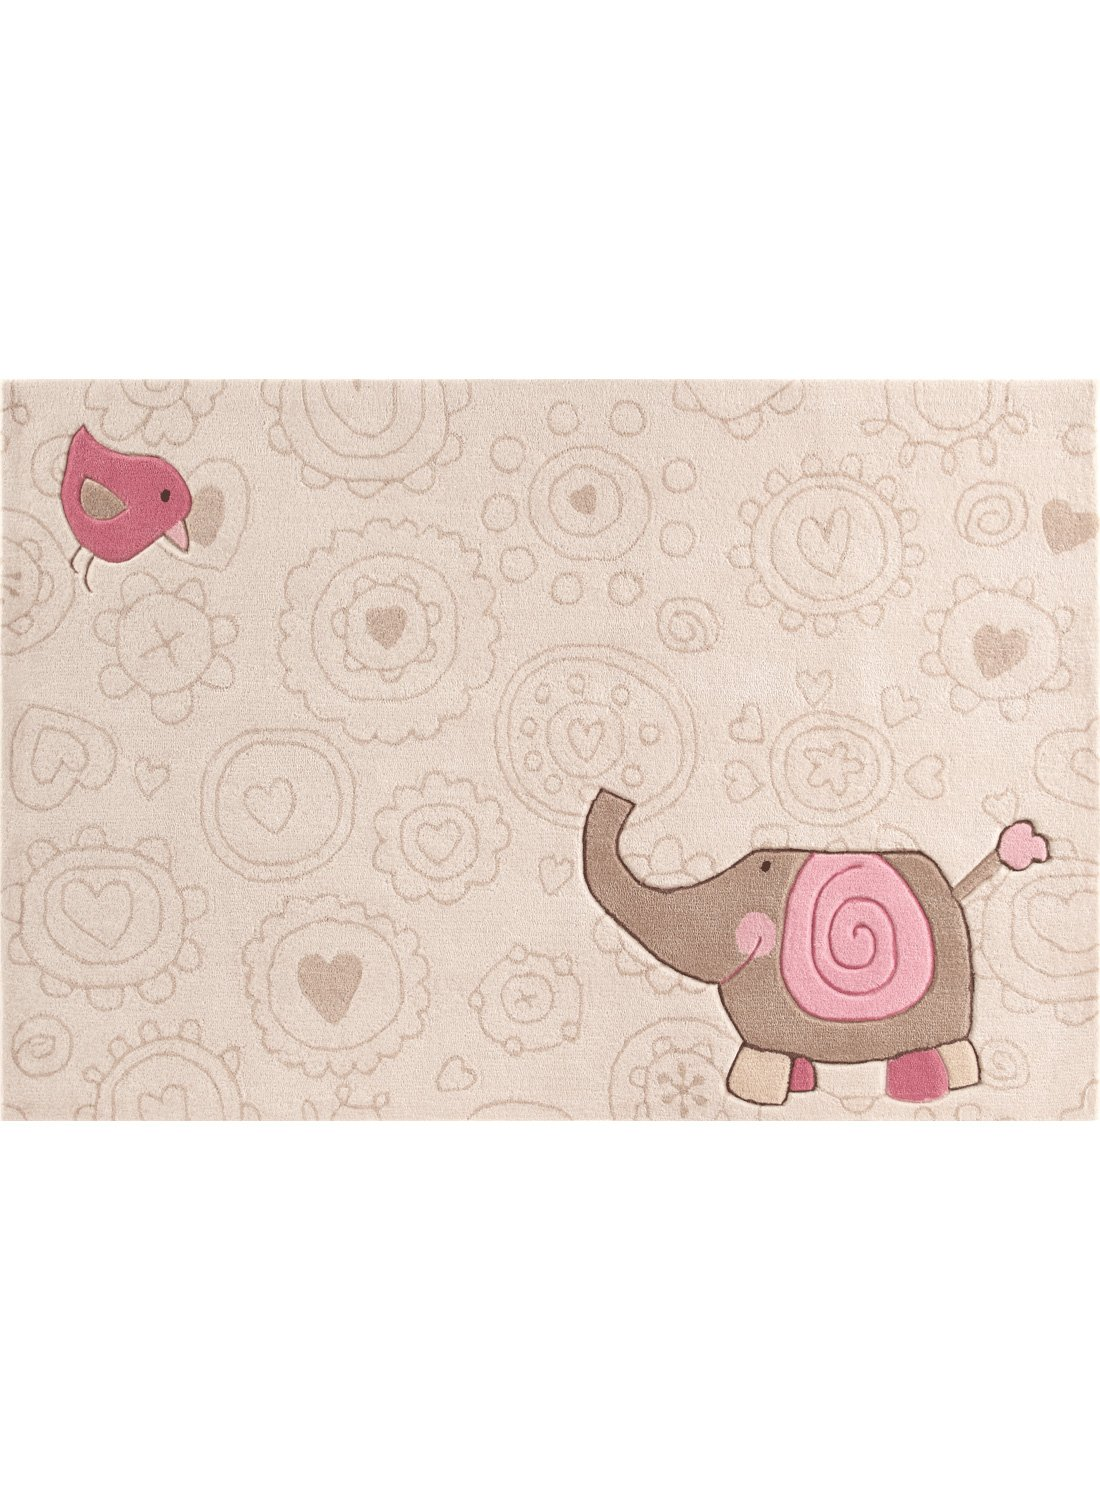 Kinderteppich sigikid  Amazon.de: Sigikid Kinderteppich Happy Zoo Elephant | beige | 140 ...